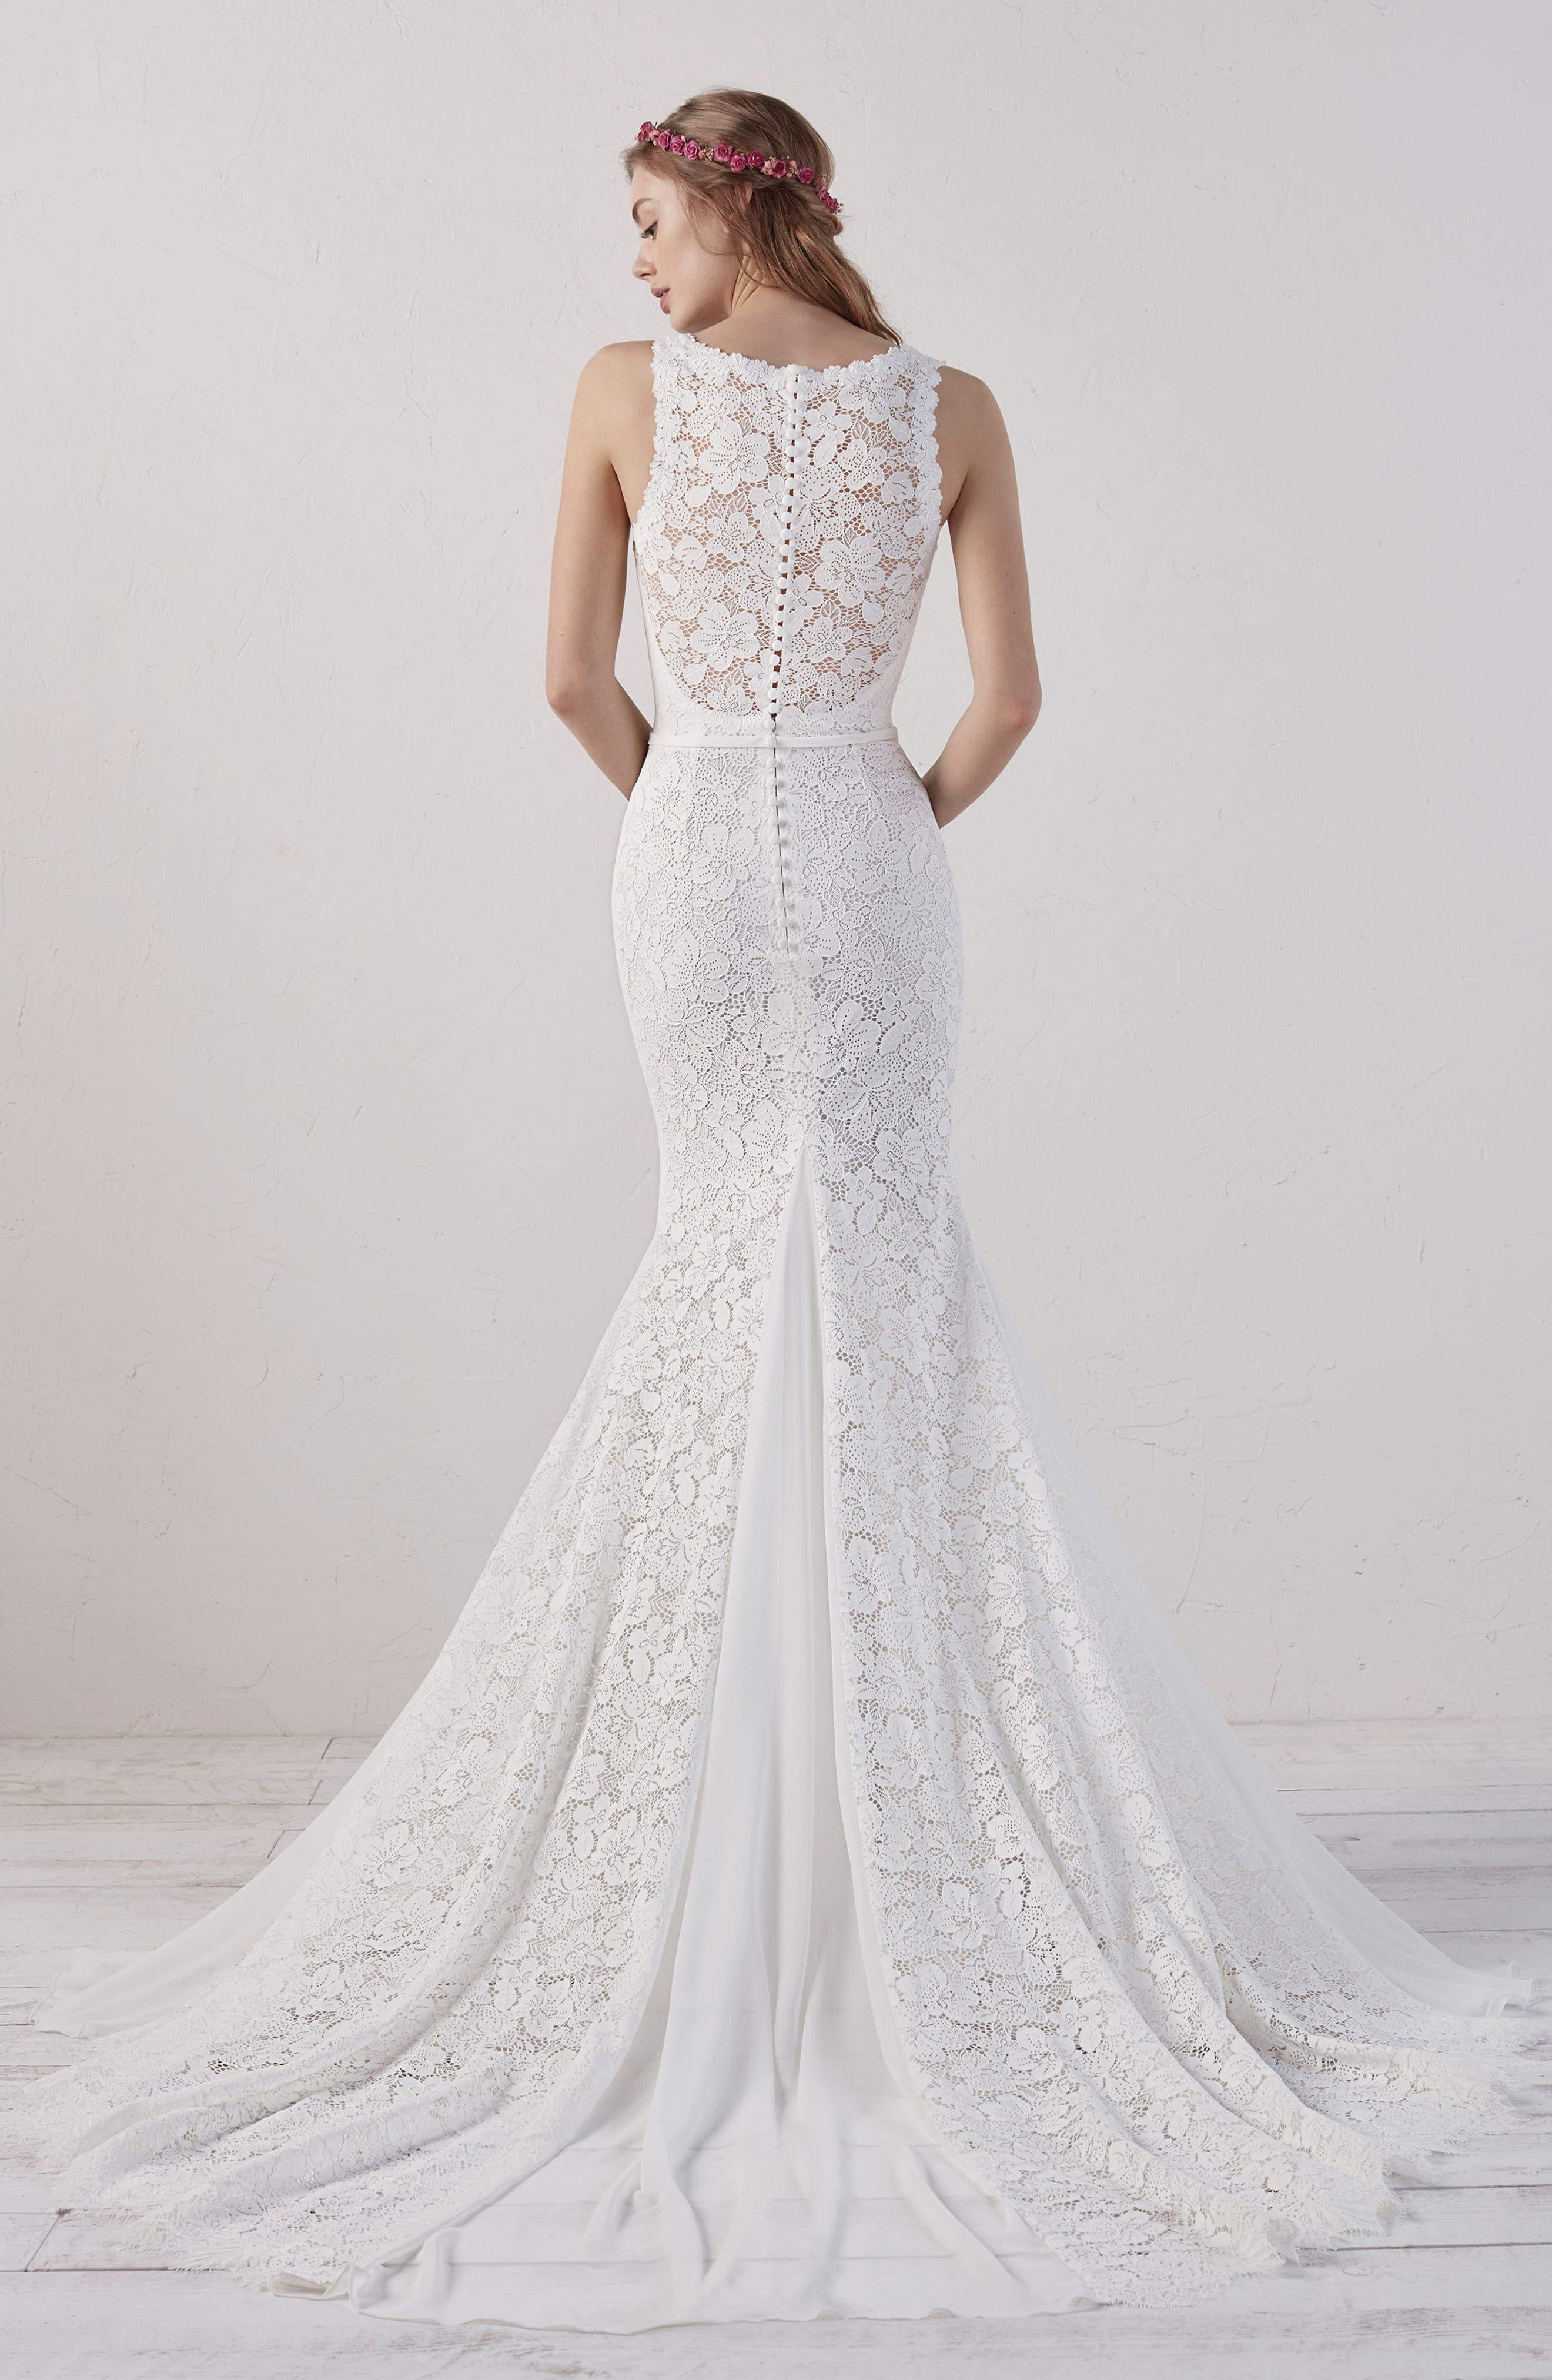 Eladia Lace Mermaid Gown,                             Alternate thumbnail 2, color,                             OFF WHITE/ CRST